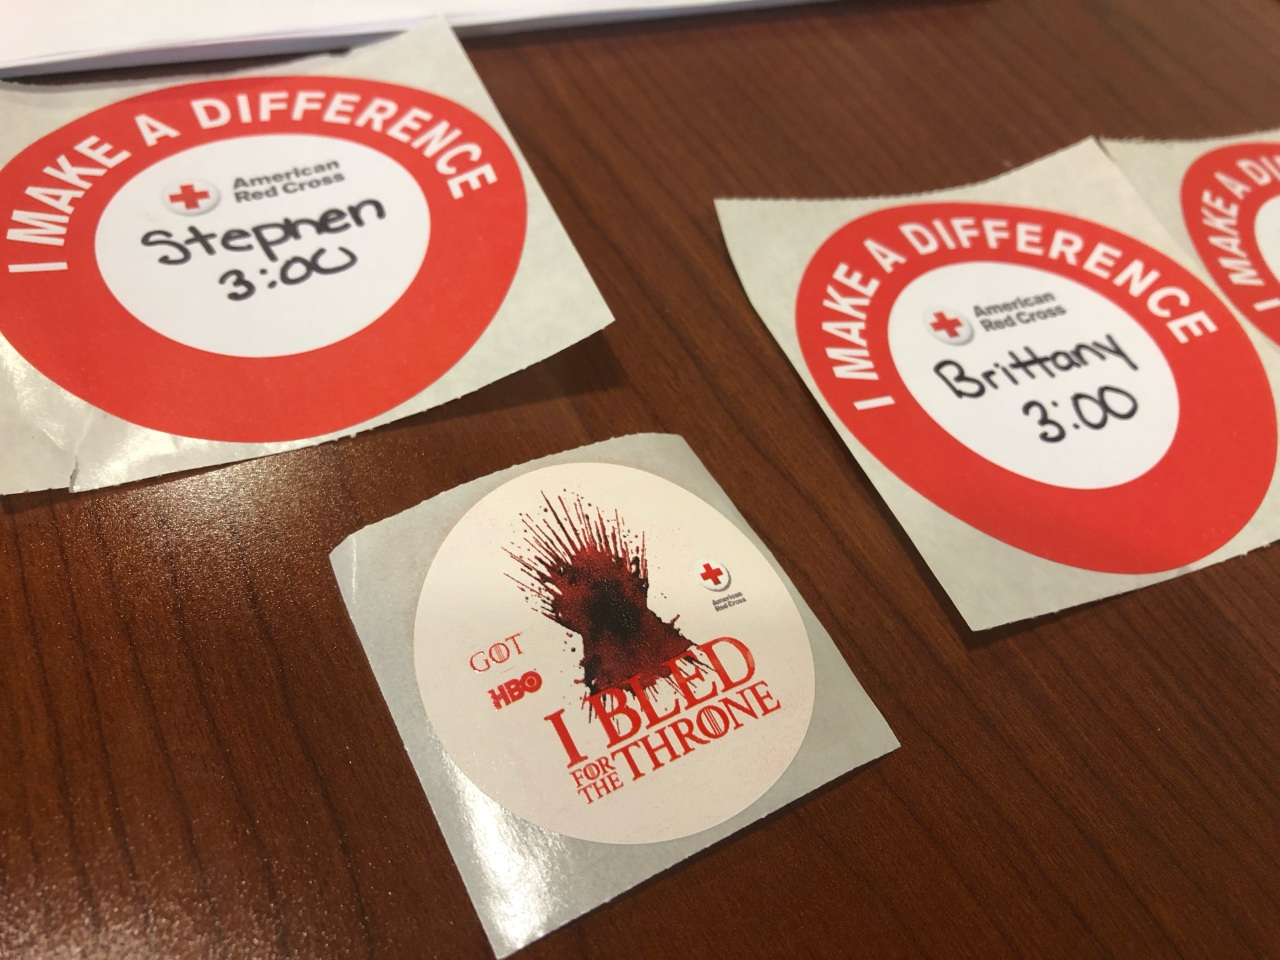 The American Red Cross gave out Game of Thrones stickers for anyone that donated blood.